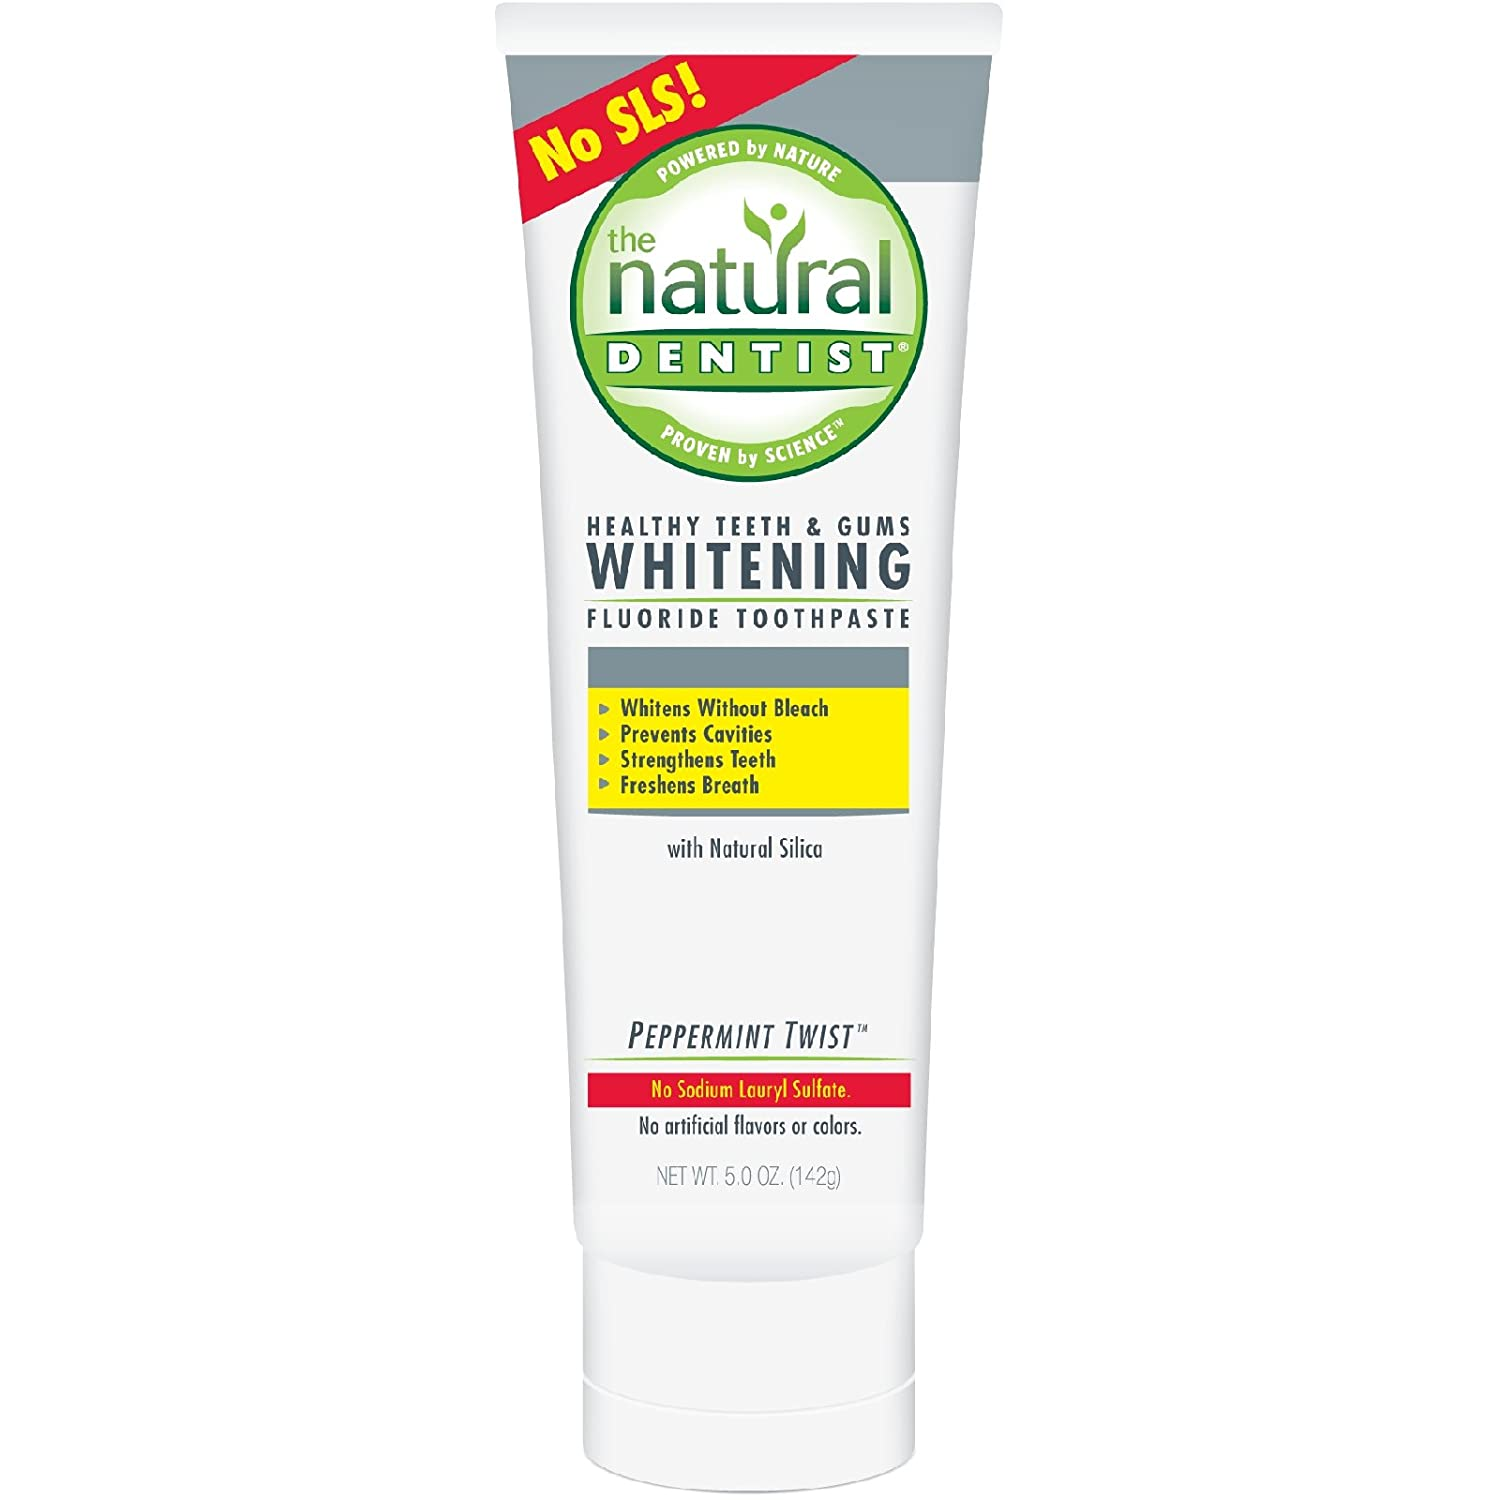 The Natural Dentist Healthy Teeth & Gums Whitening Plus Toothpaste, Peppermint Twist 5 oz (Pack of 4)